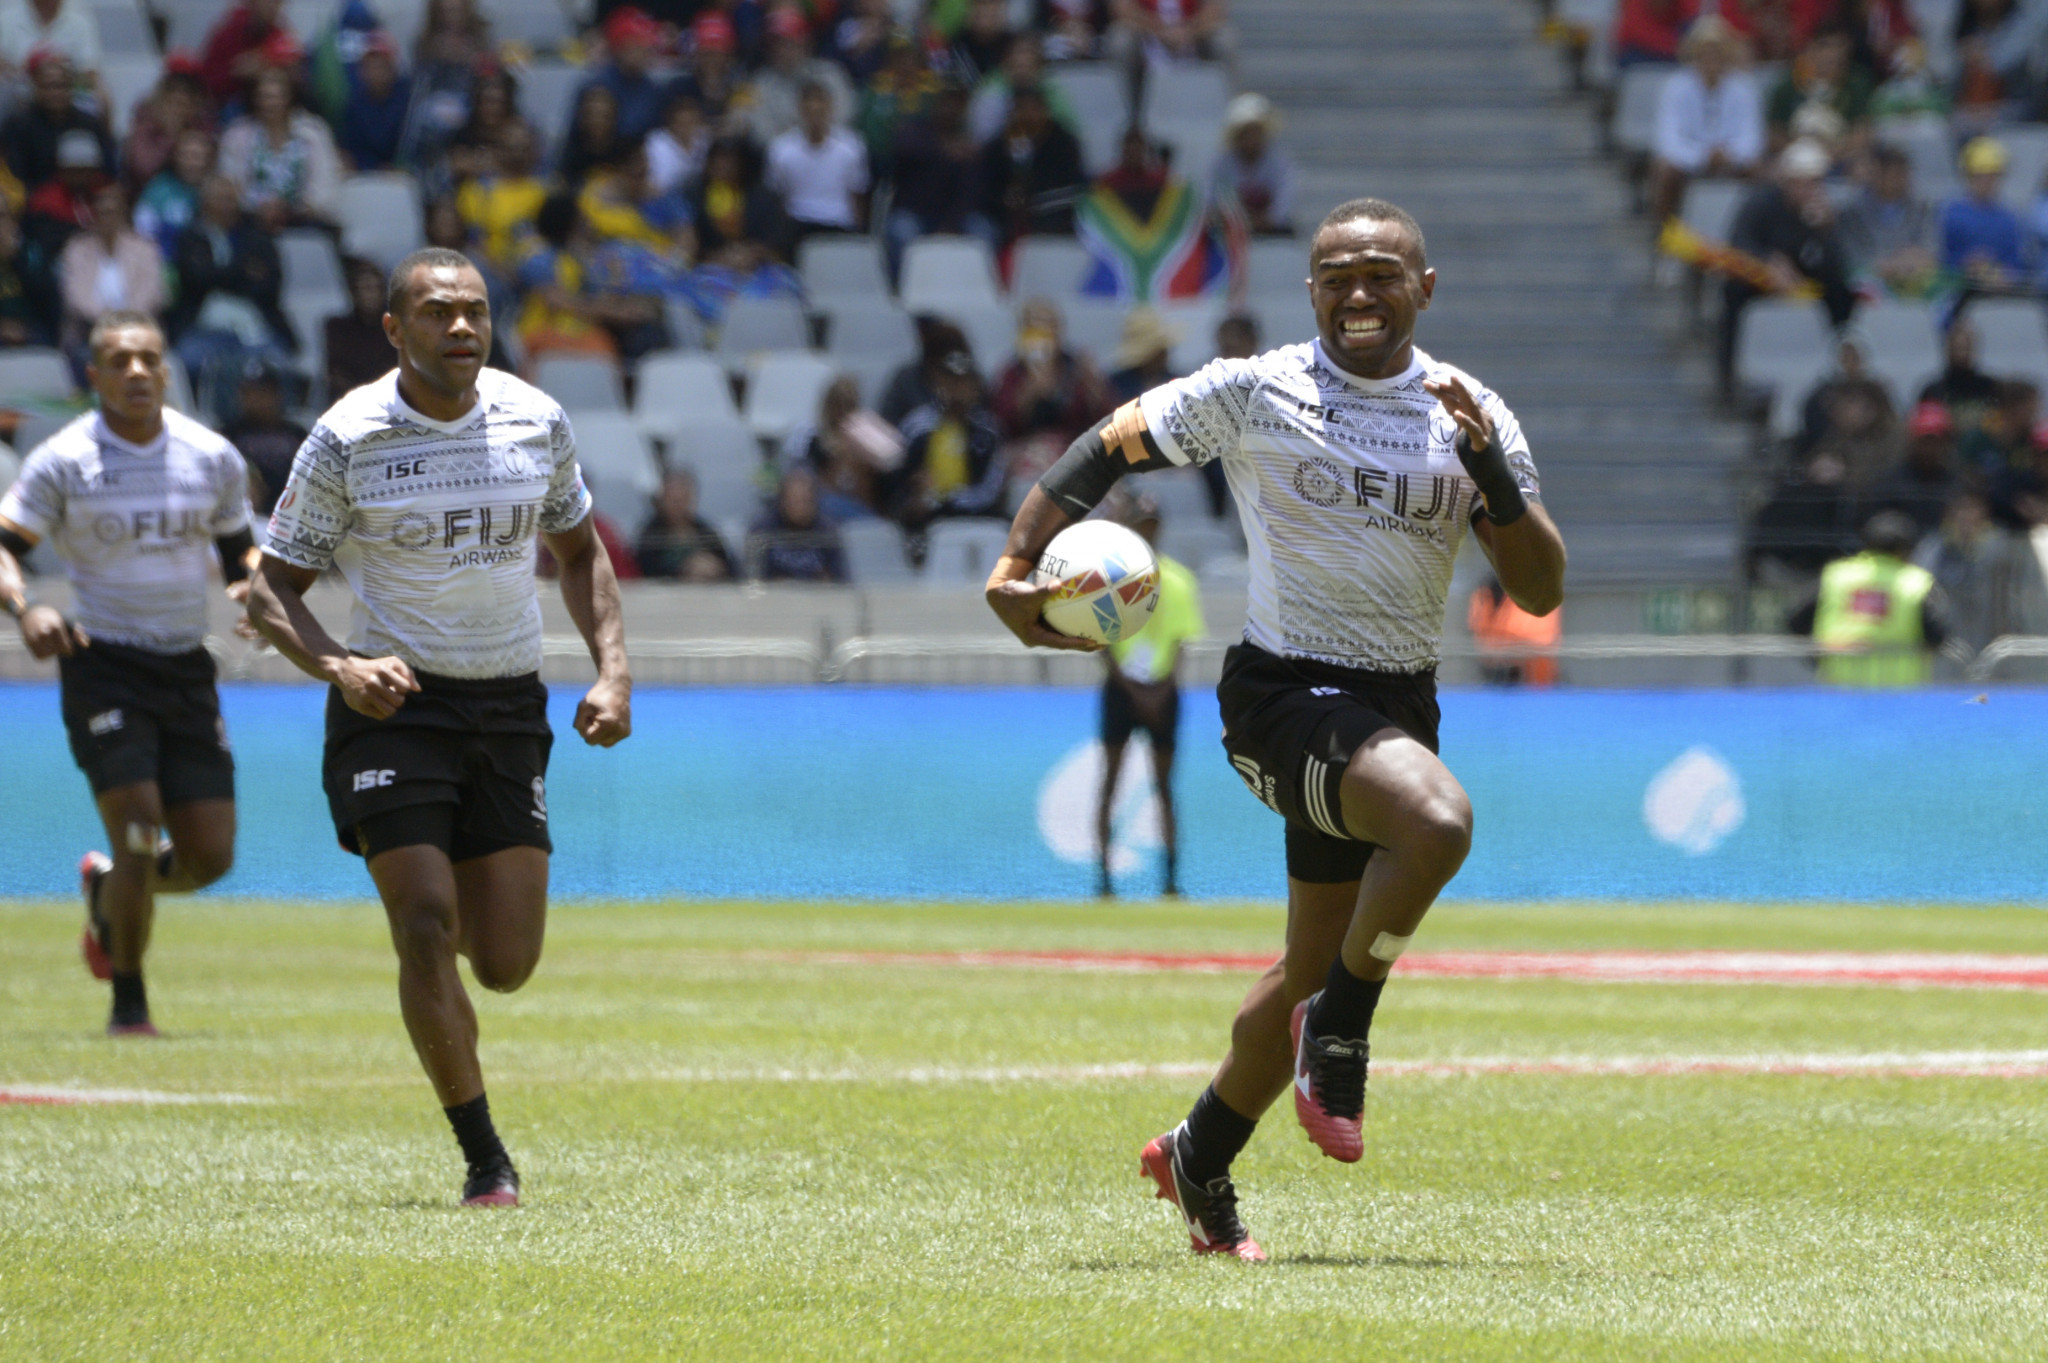 Fiji's rugby sevens teams are the only athletes to have confirmed a place at Tokyo 2020 ©Getty Images